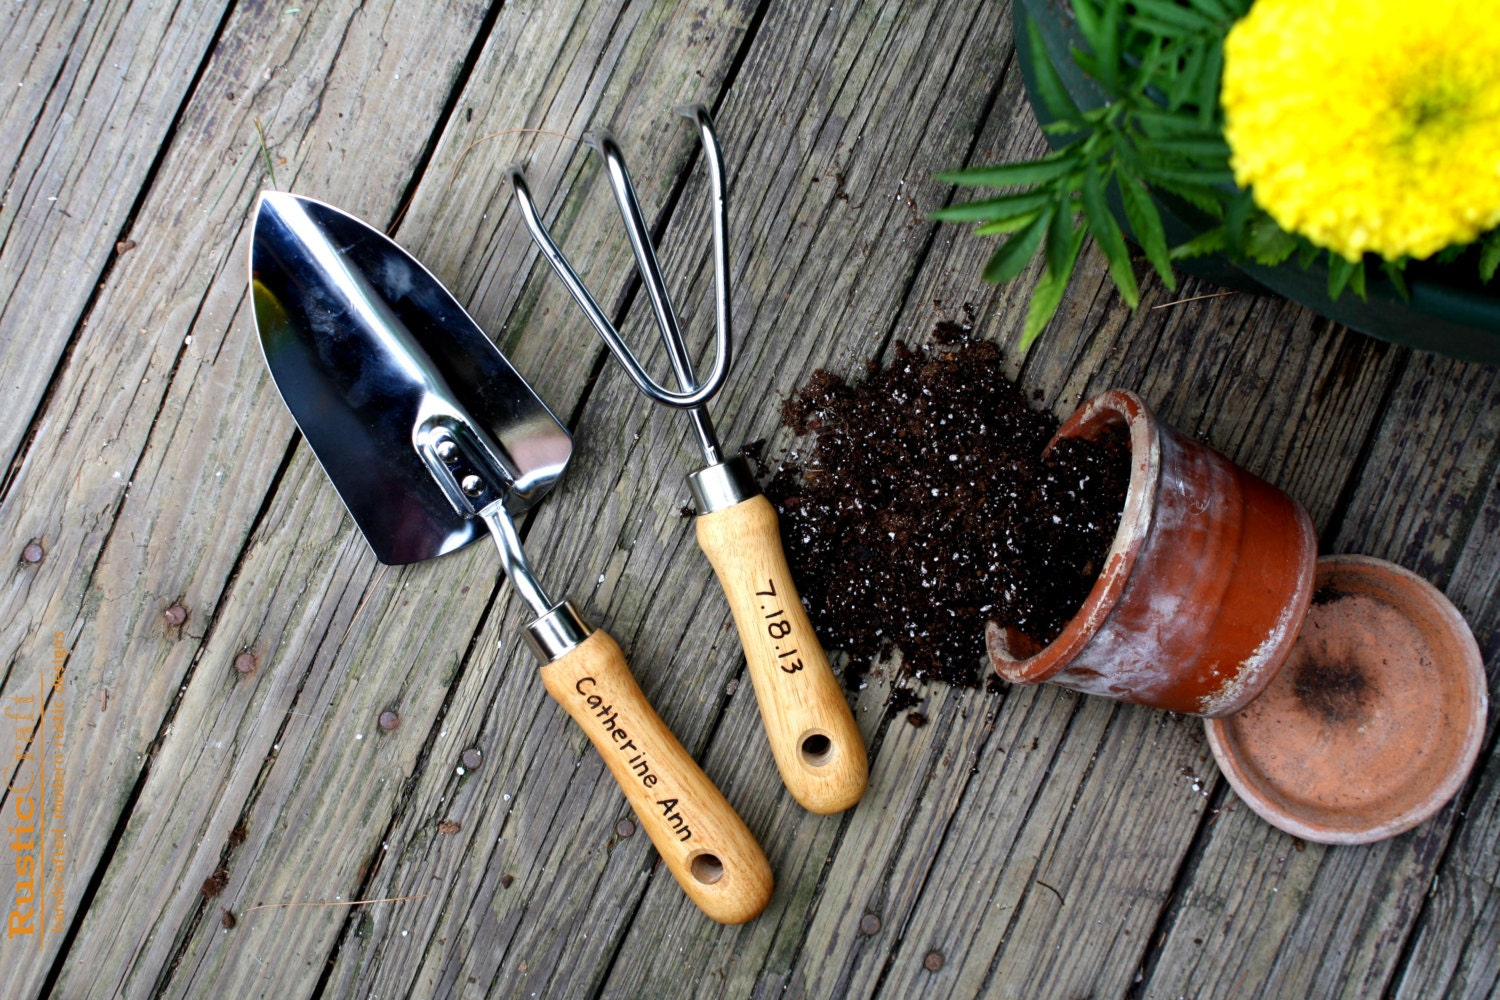 Personalized garden tool set hand trowel short shovel for Hand tools for planting